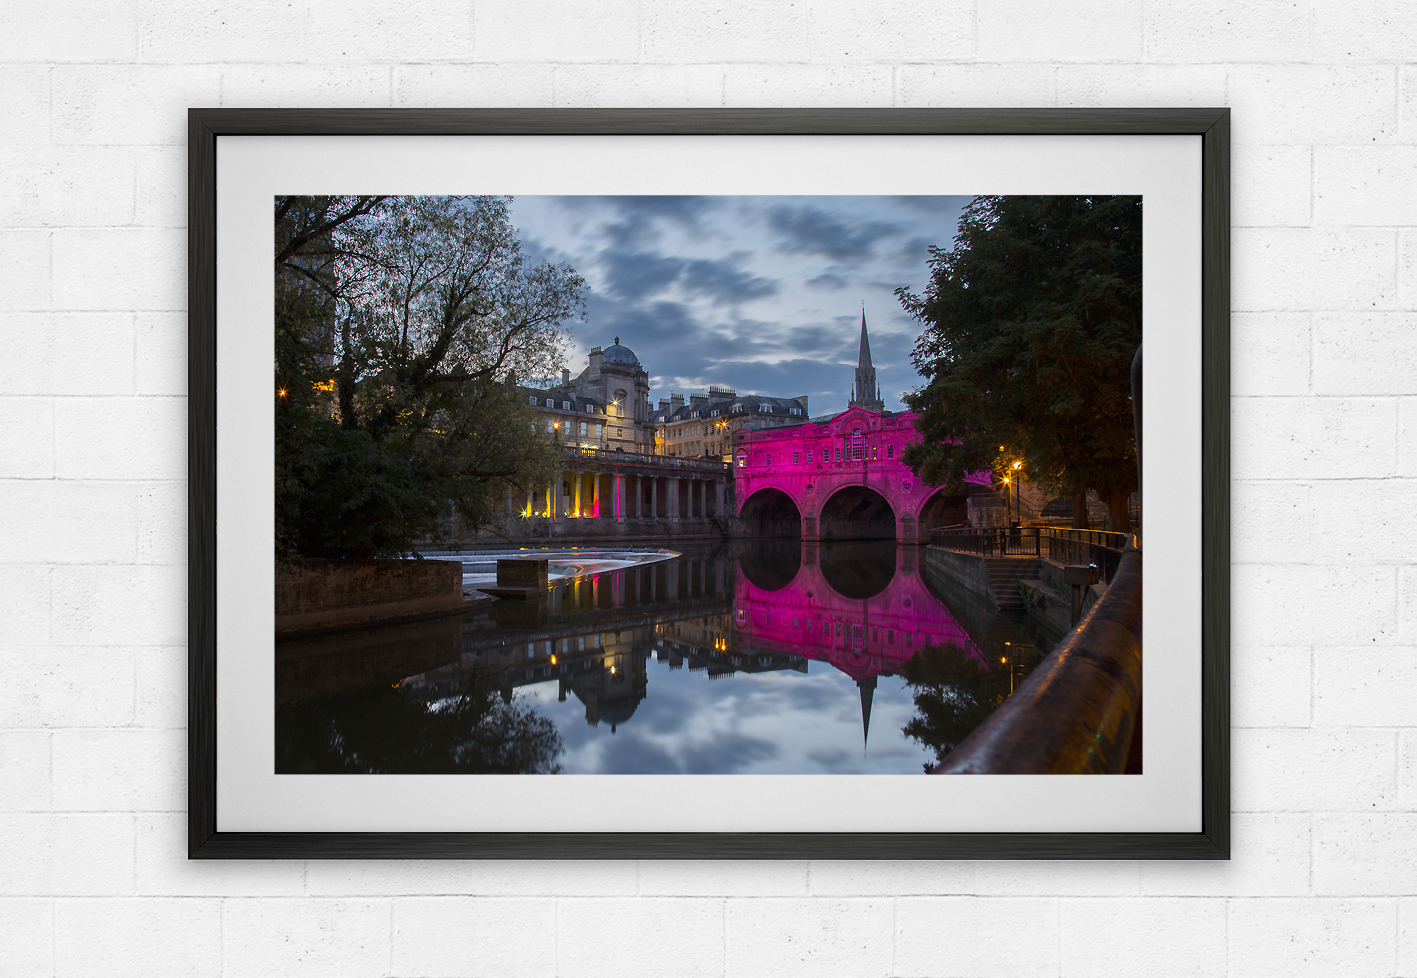 pink Pulteney Bridge in Bath